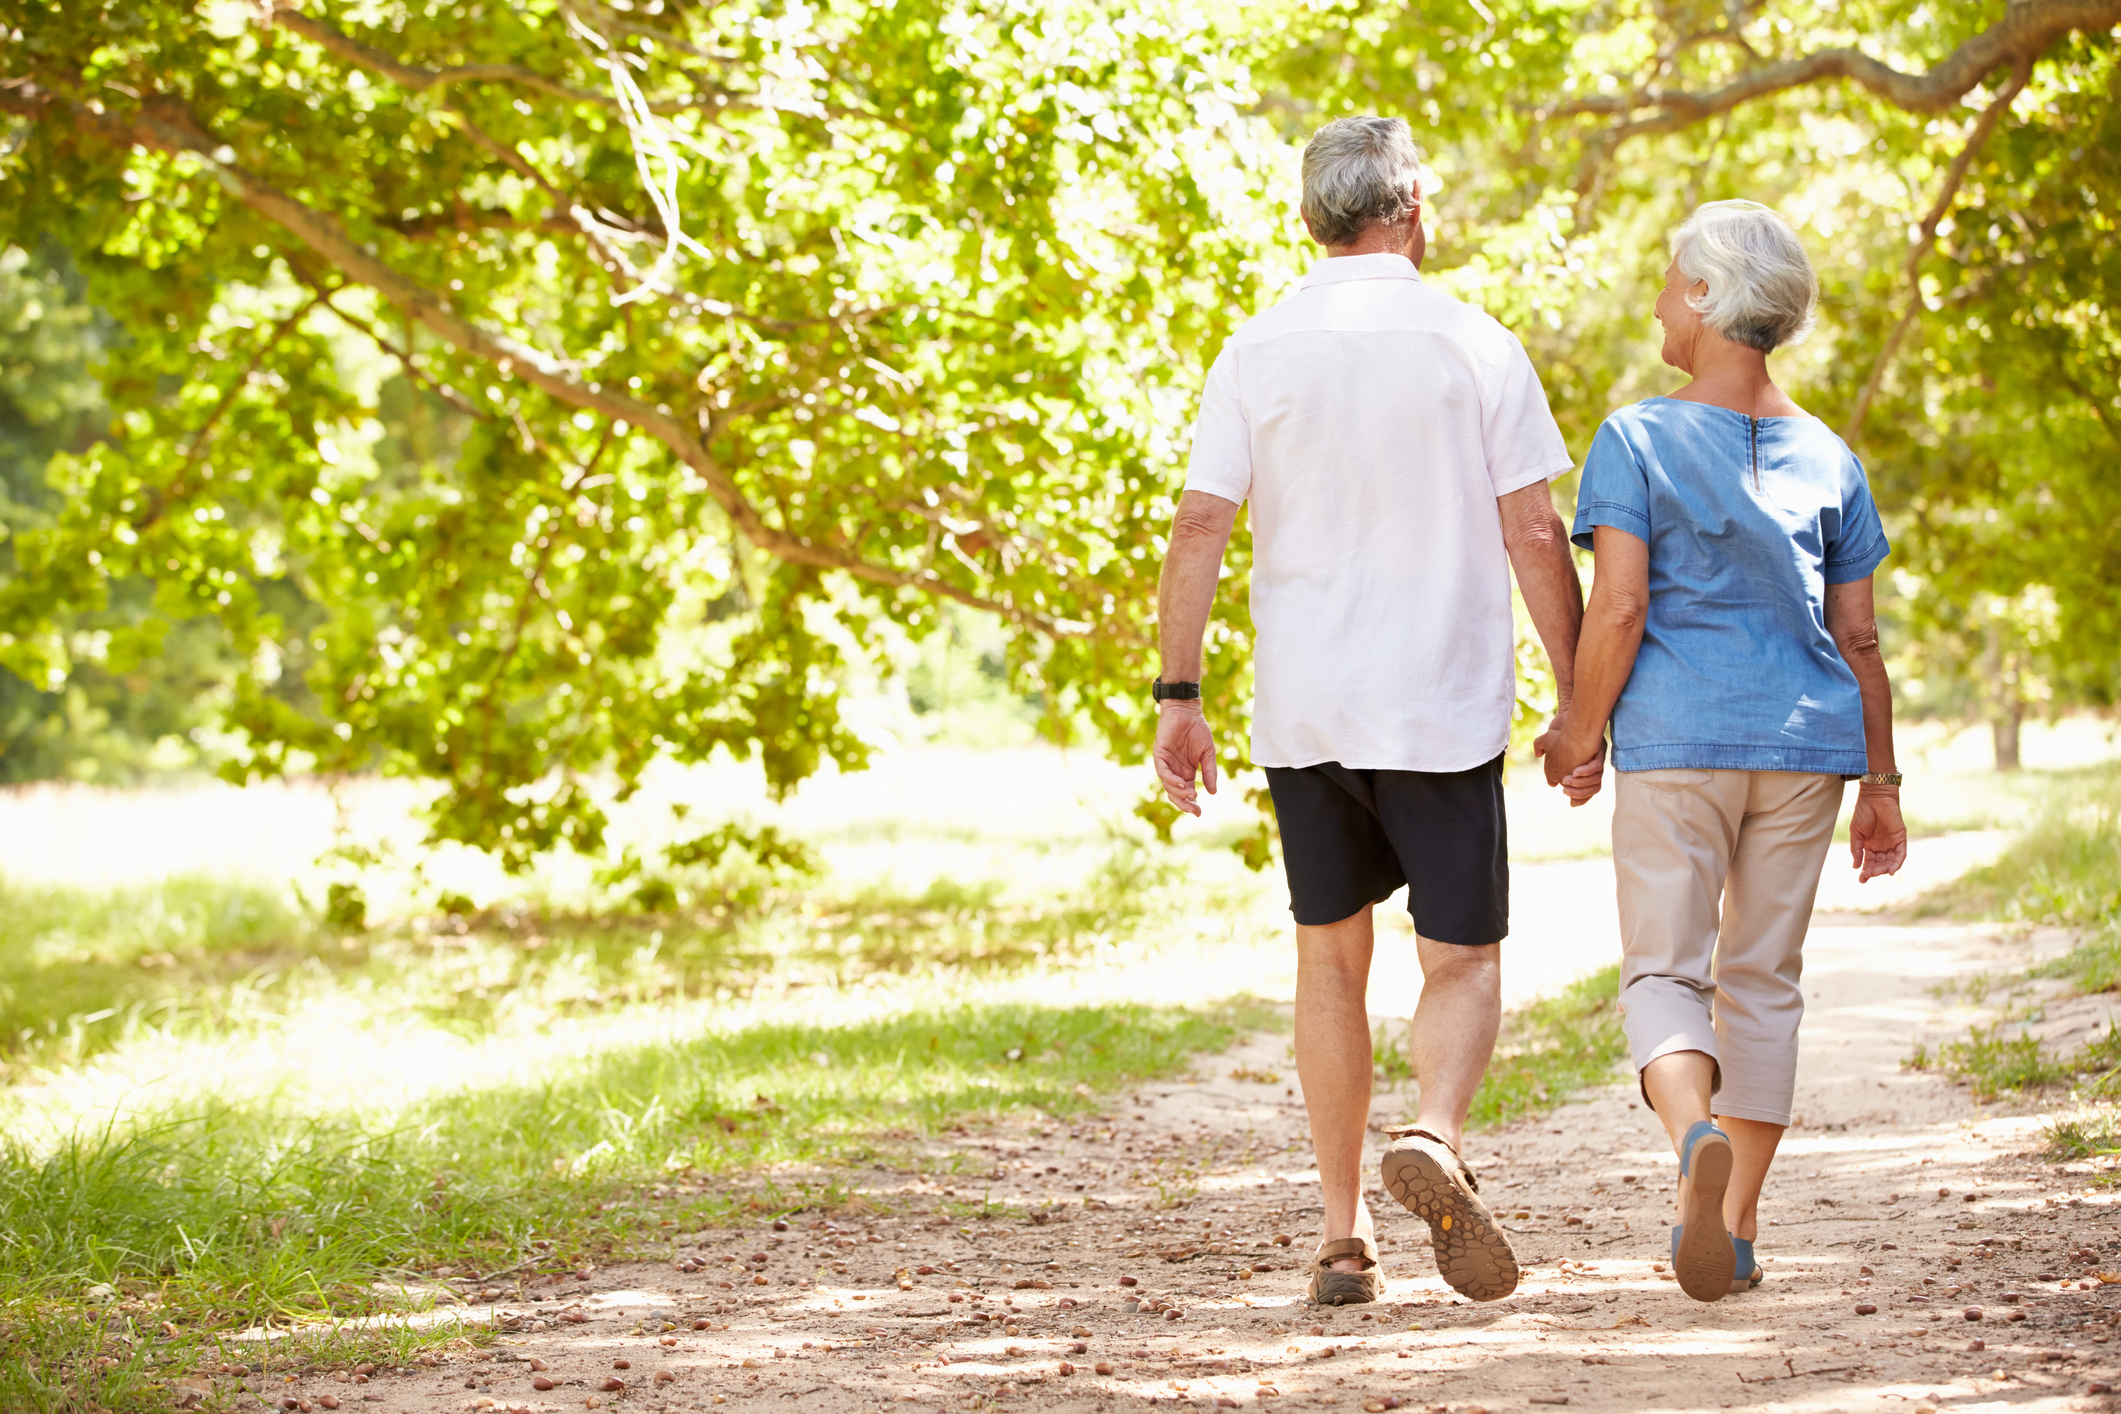 Benefits of Fresh Air for Seniors This Spring